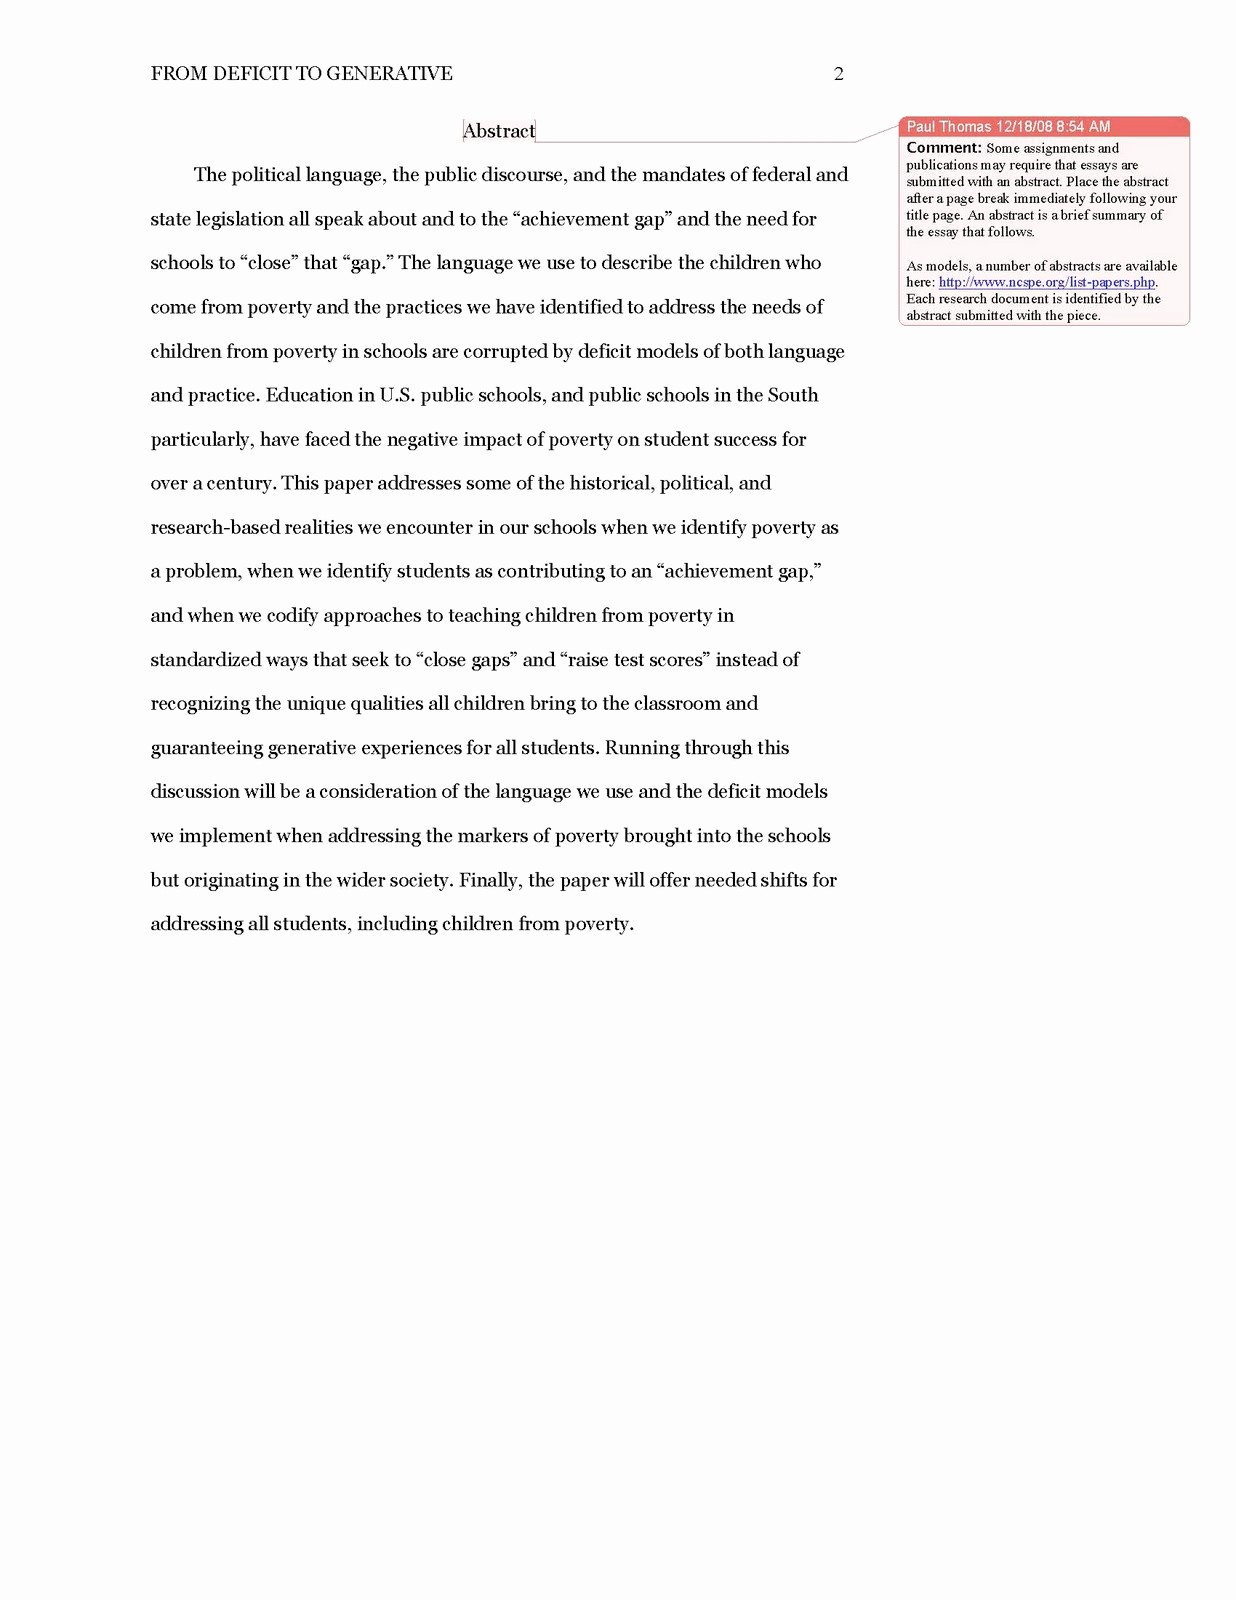 Apa format Paper 6th Edition Beautiful Best S Of Cover Letter Apa 6th Edition Apa format